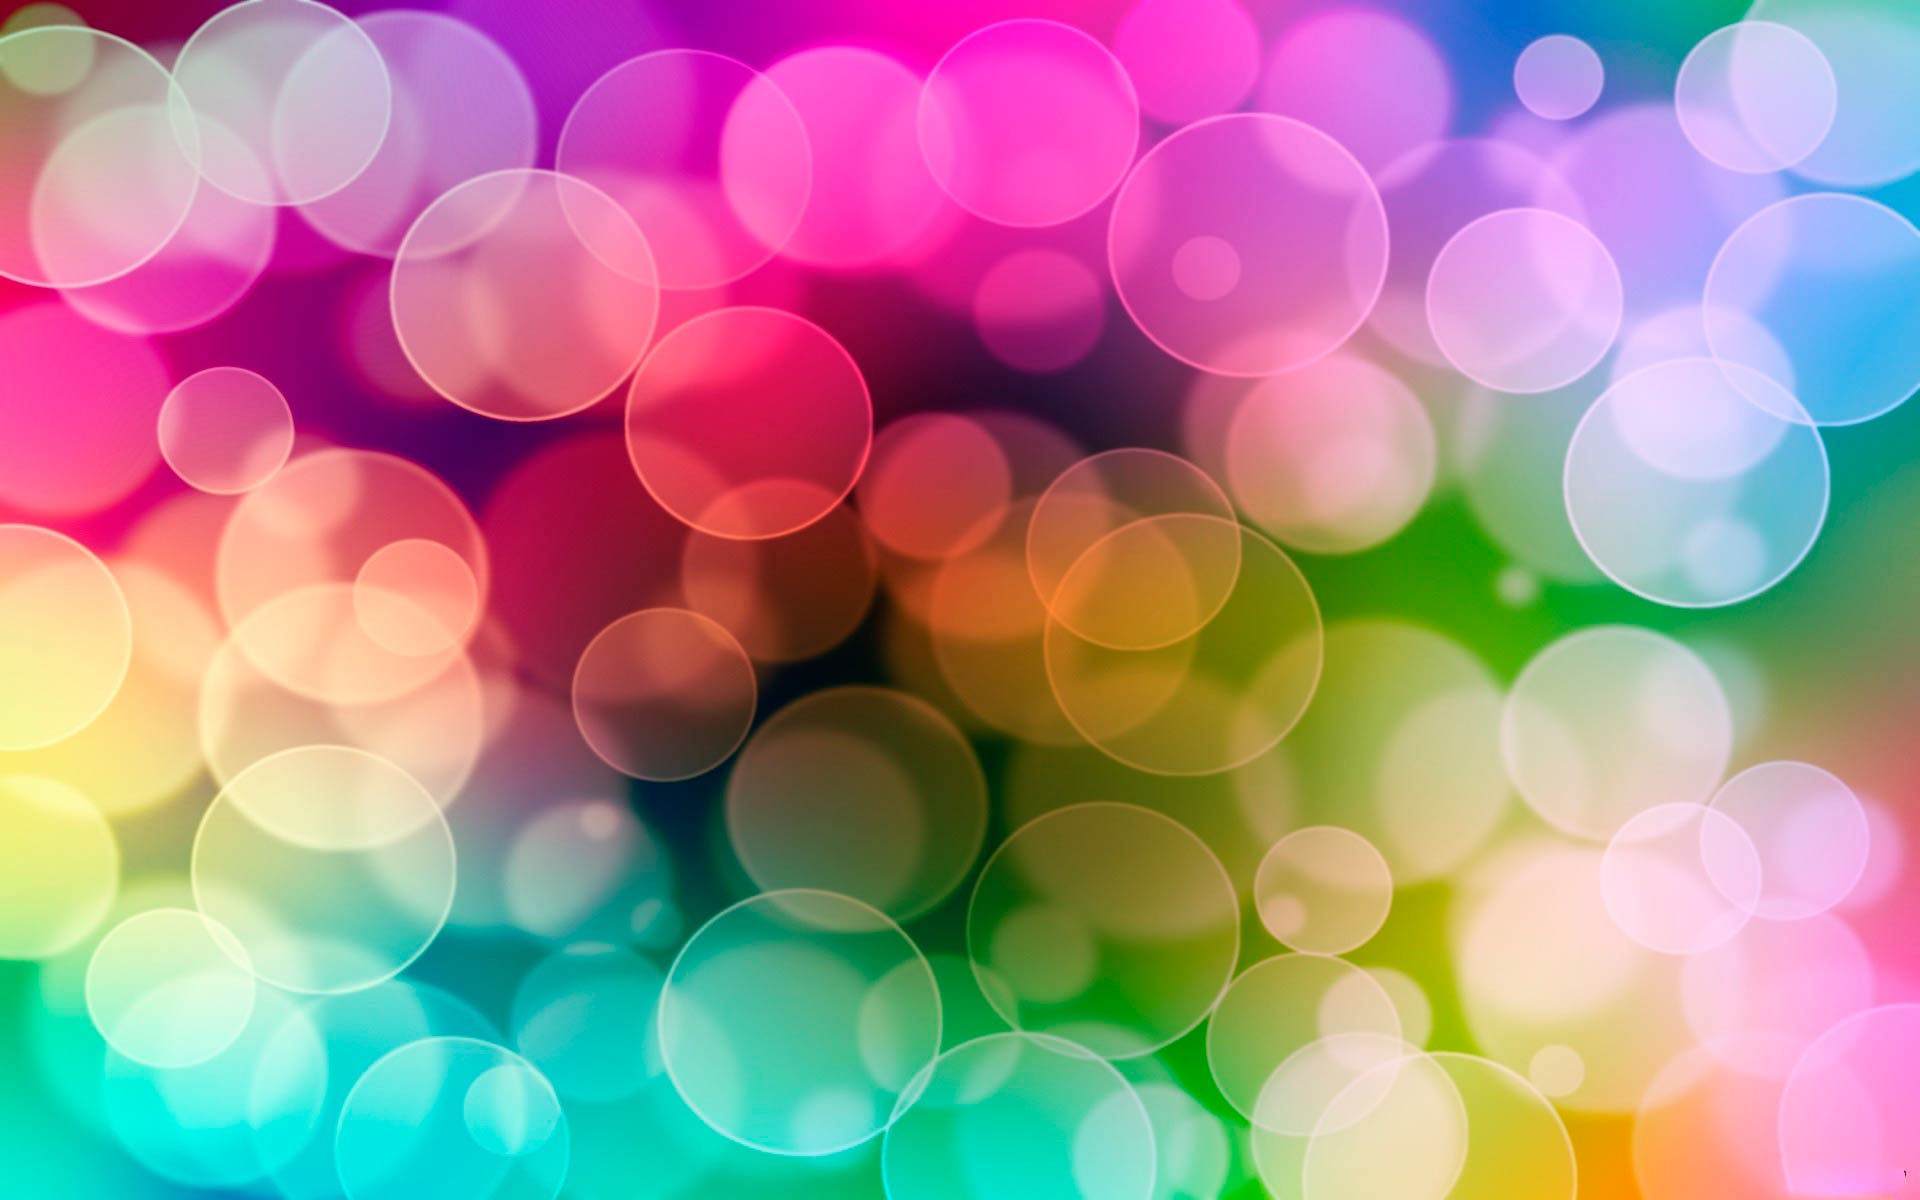 Free Colorful Wallpapers - Wallpaper Cave